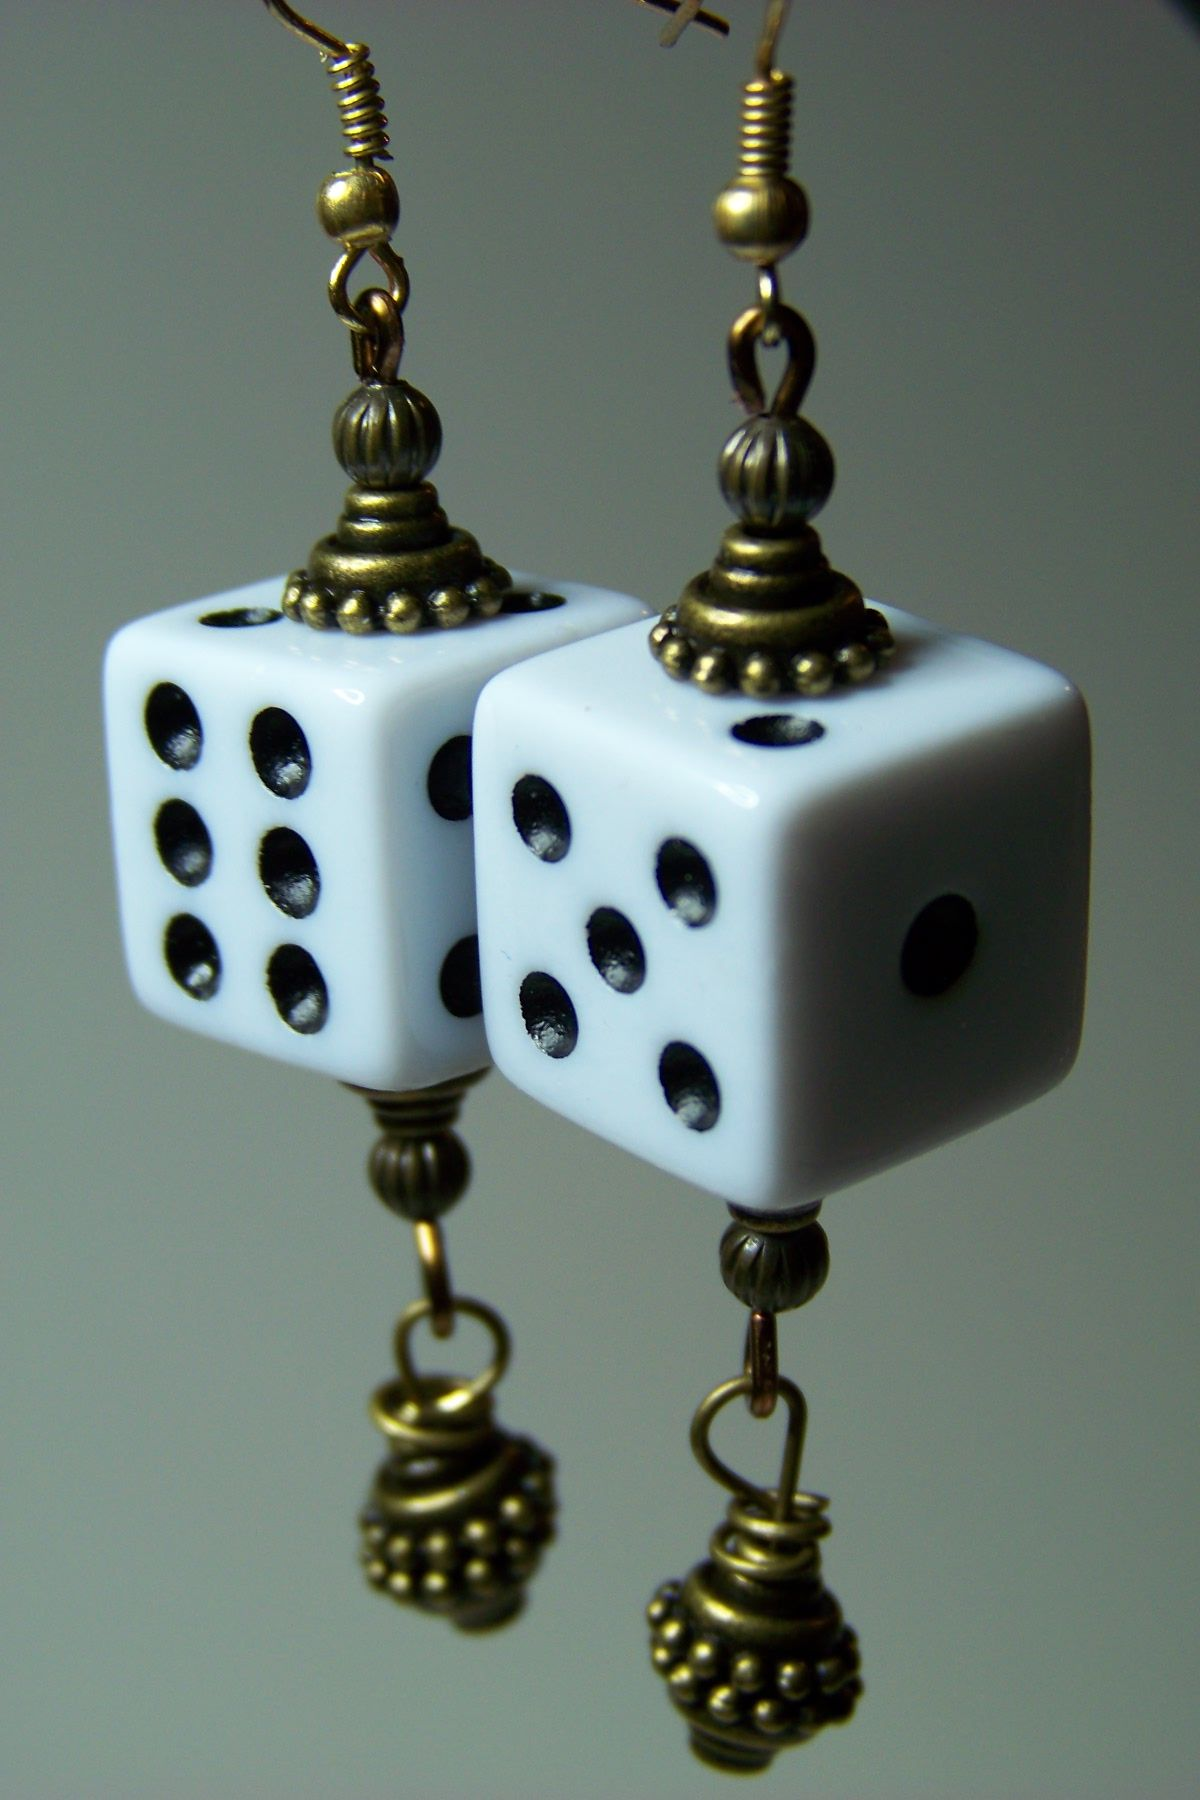 Take a chance with these dice earrings!